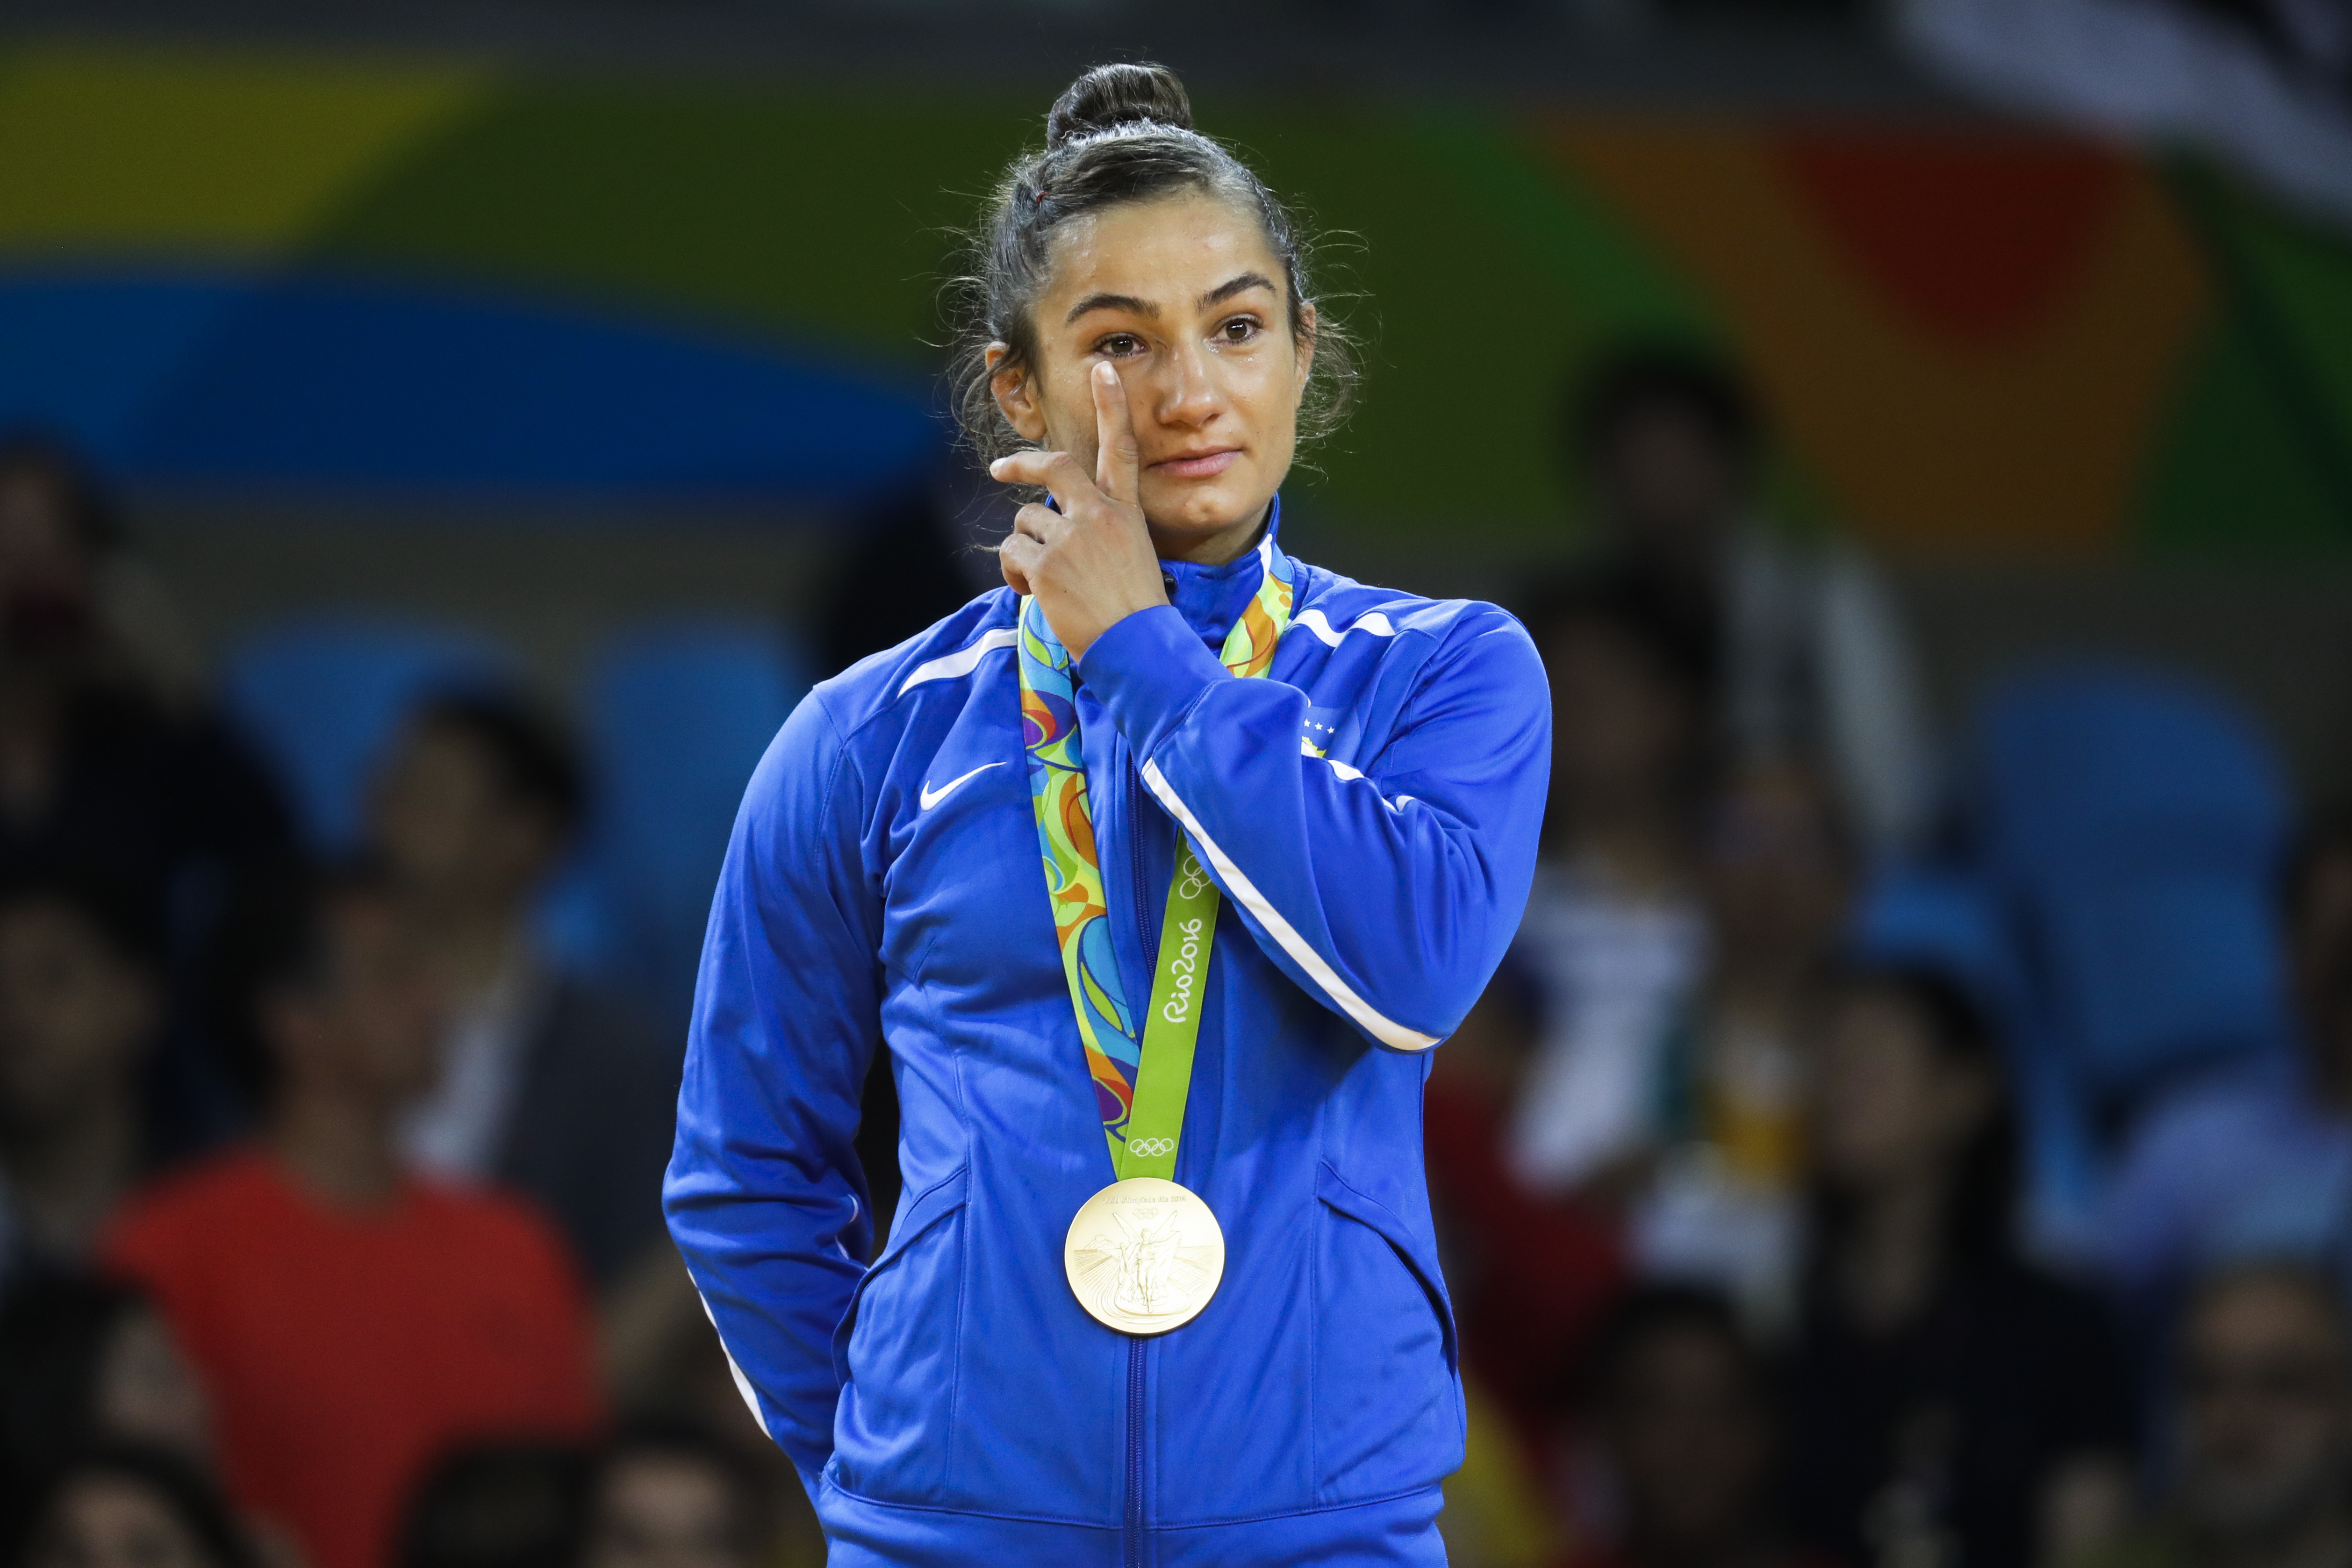 Kosovo's Majlinda Kelmendi receives the gold medal after winning the women's 52-kg judo competition at the 2016 Summer Olympics in Rio de Janeiro, Brazil, Sunday, Aug. 7, 2016.